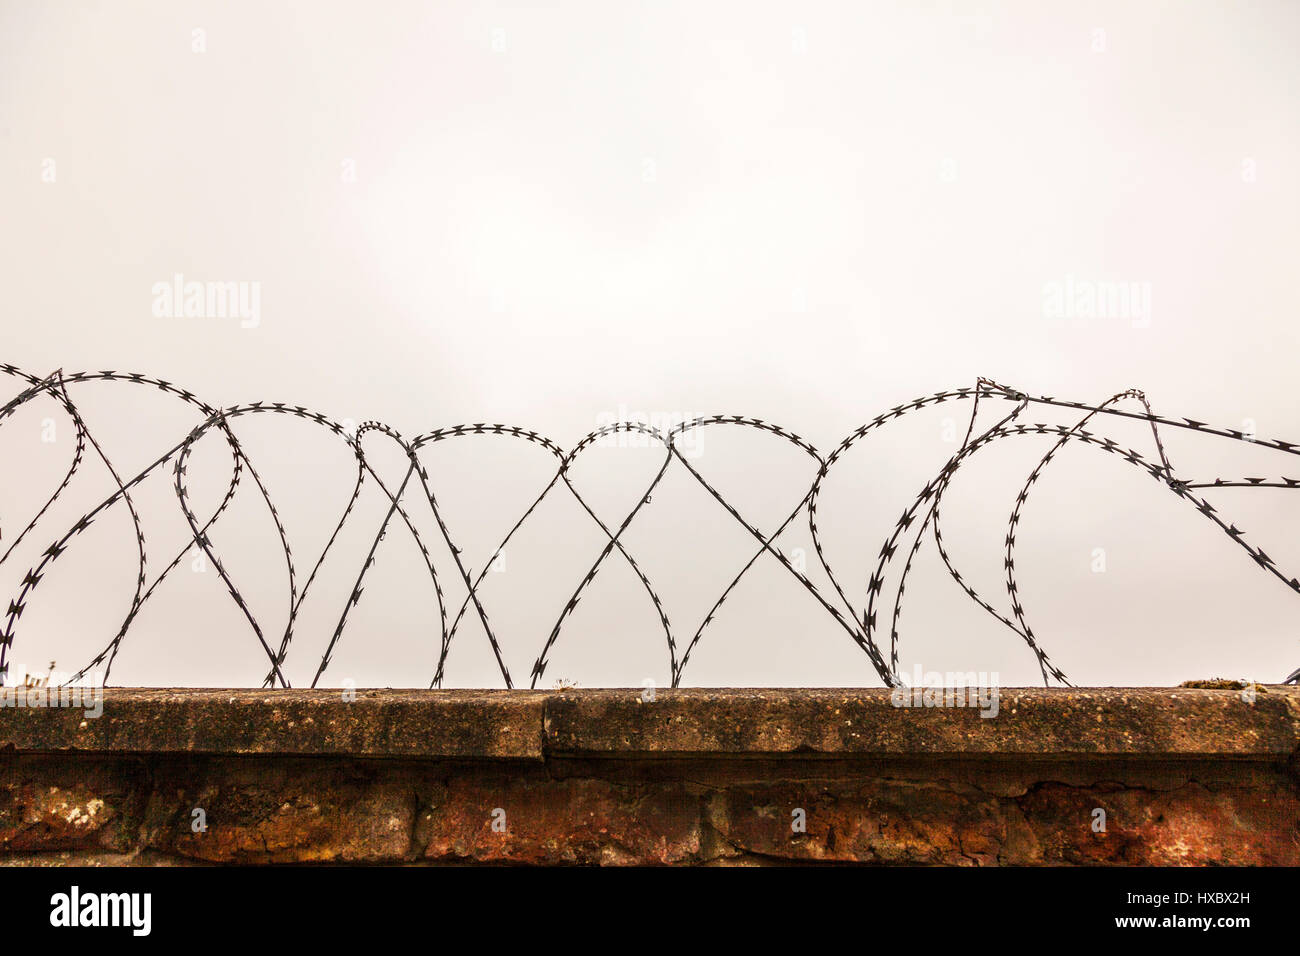 Razor wire security fence protection from burglars secure wall prison security razor wire fence sharp deterrent - Stock Image